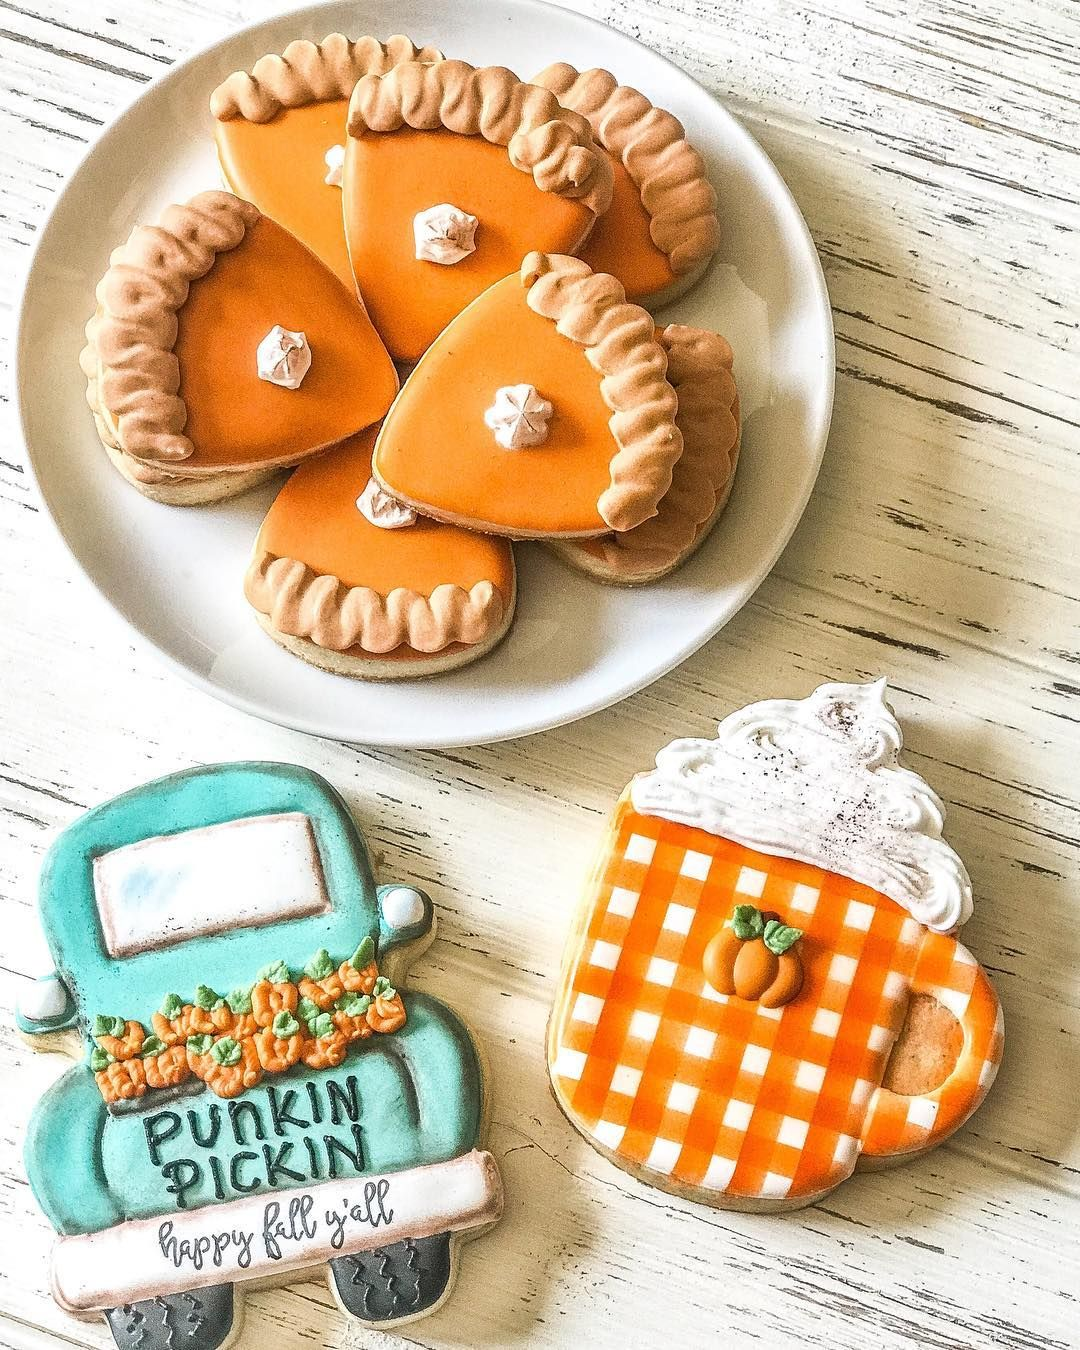 "Sonia Kim - Cookie Decorator on Instagram: ""MARK YOUR CALENDAR for our upcoming POP UP! @borderlandsbakery and I will be at @kitchentablesac next Saturday Sept. 22 from 1-4pm. We will…"""